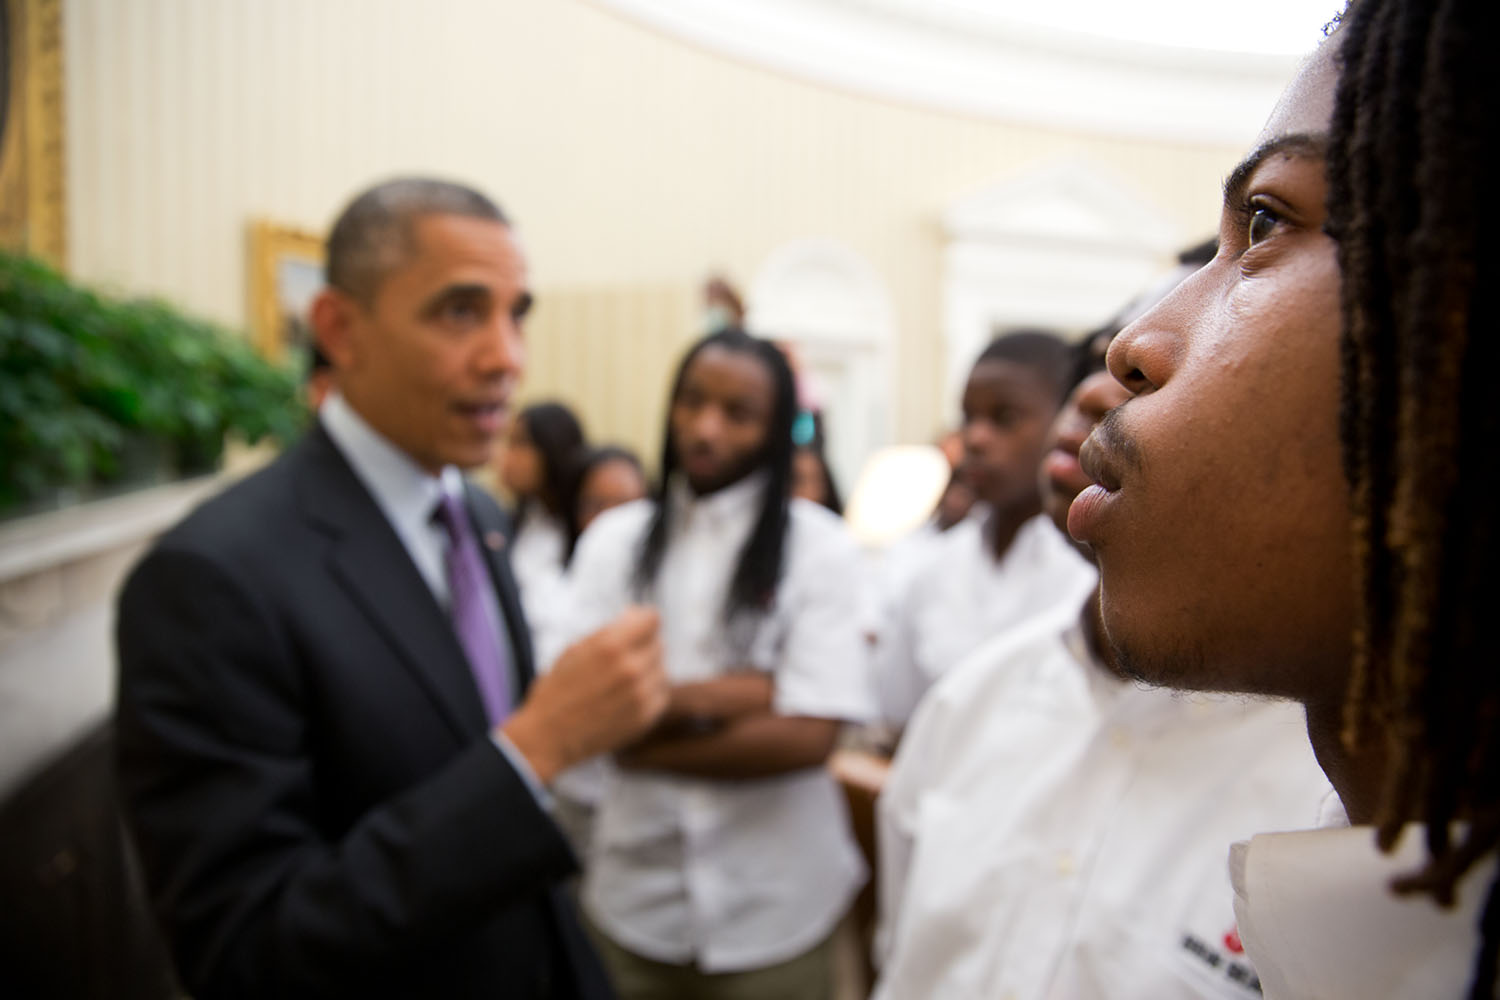 President Barack Obama visits with students and counselors from William R. Harper High School in Chicago, Ill., in the Oval Office, June 5, 2013. First Lady Michelle Obama met with the students in April 2013 to discuss youth violence. (Official White House Photo by Pete Souza) Students from William R. Harper High School in Chicago, Ill., listen as President Barack Obama talks with them about the Emancipation Proclamation hanging in the Oval Office, June 5, 2013. (Official White House Photo by Pete Souza)